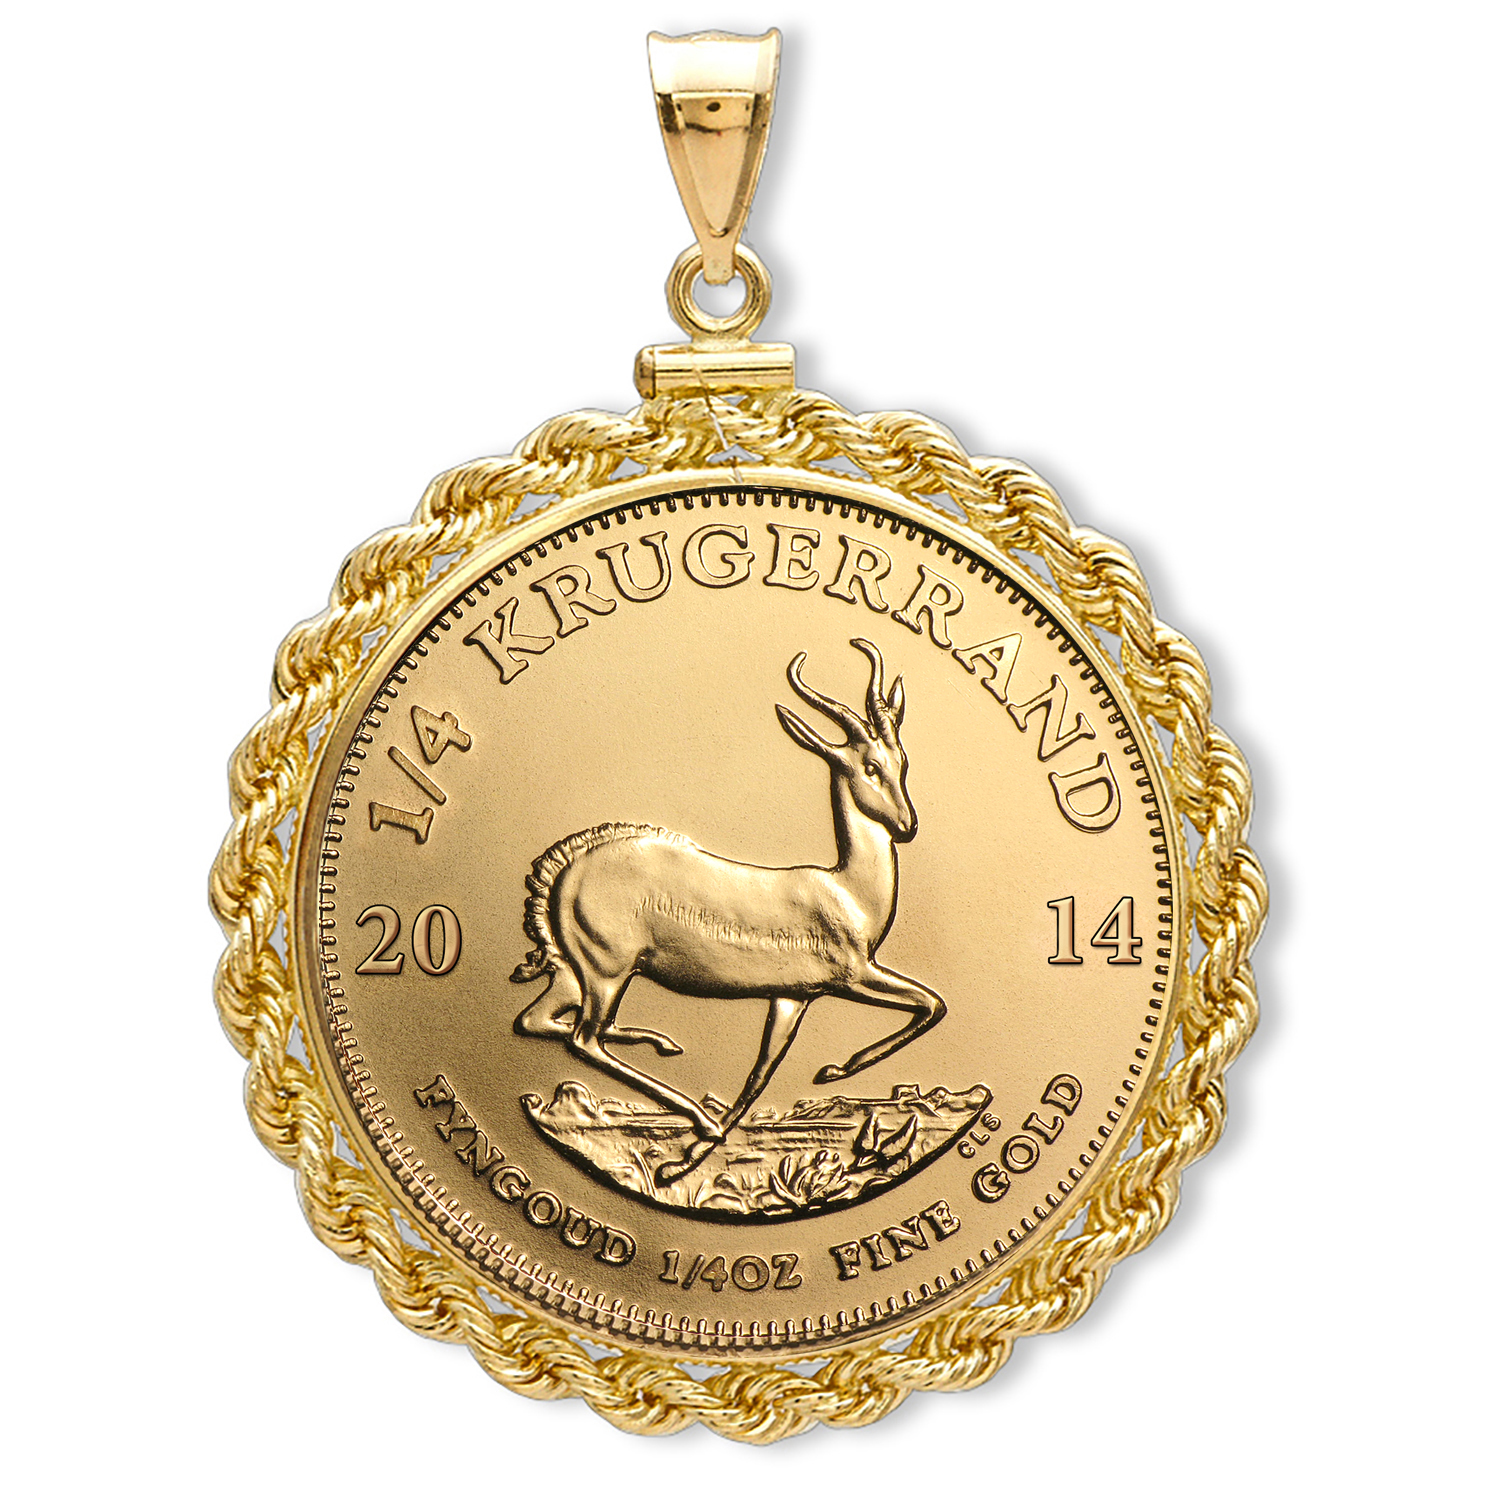 2014 1/4 oz Gold Krugerrand Pendant (Rope-ScrewTop Bezel)